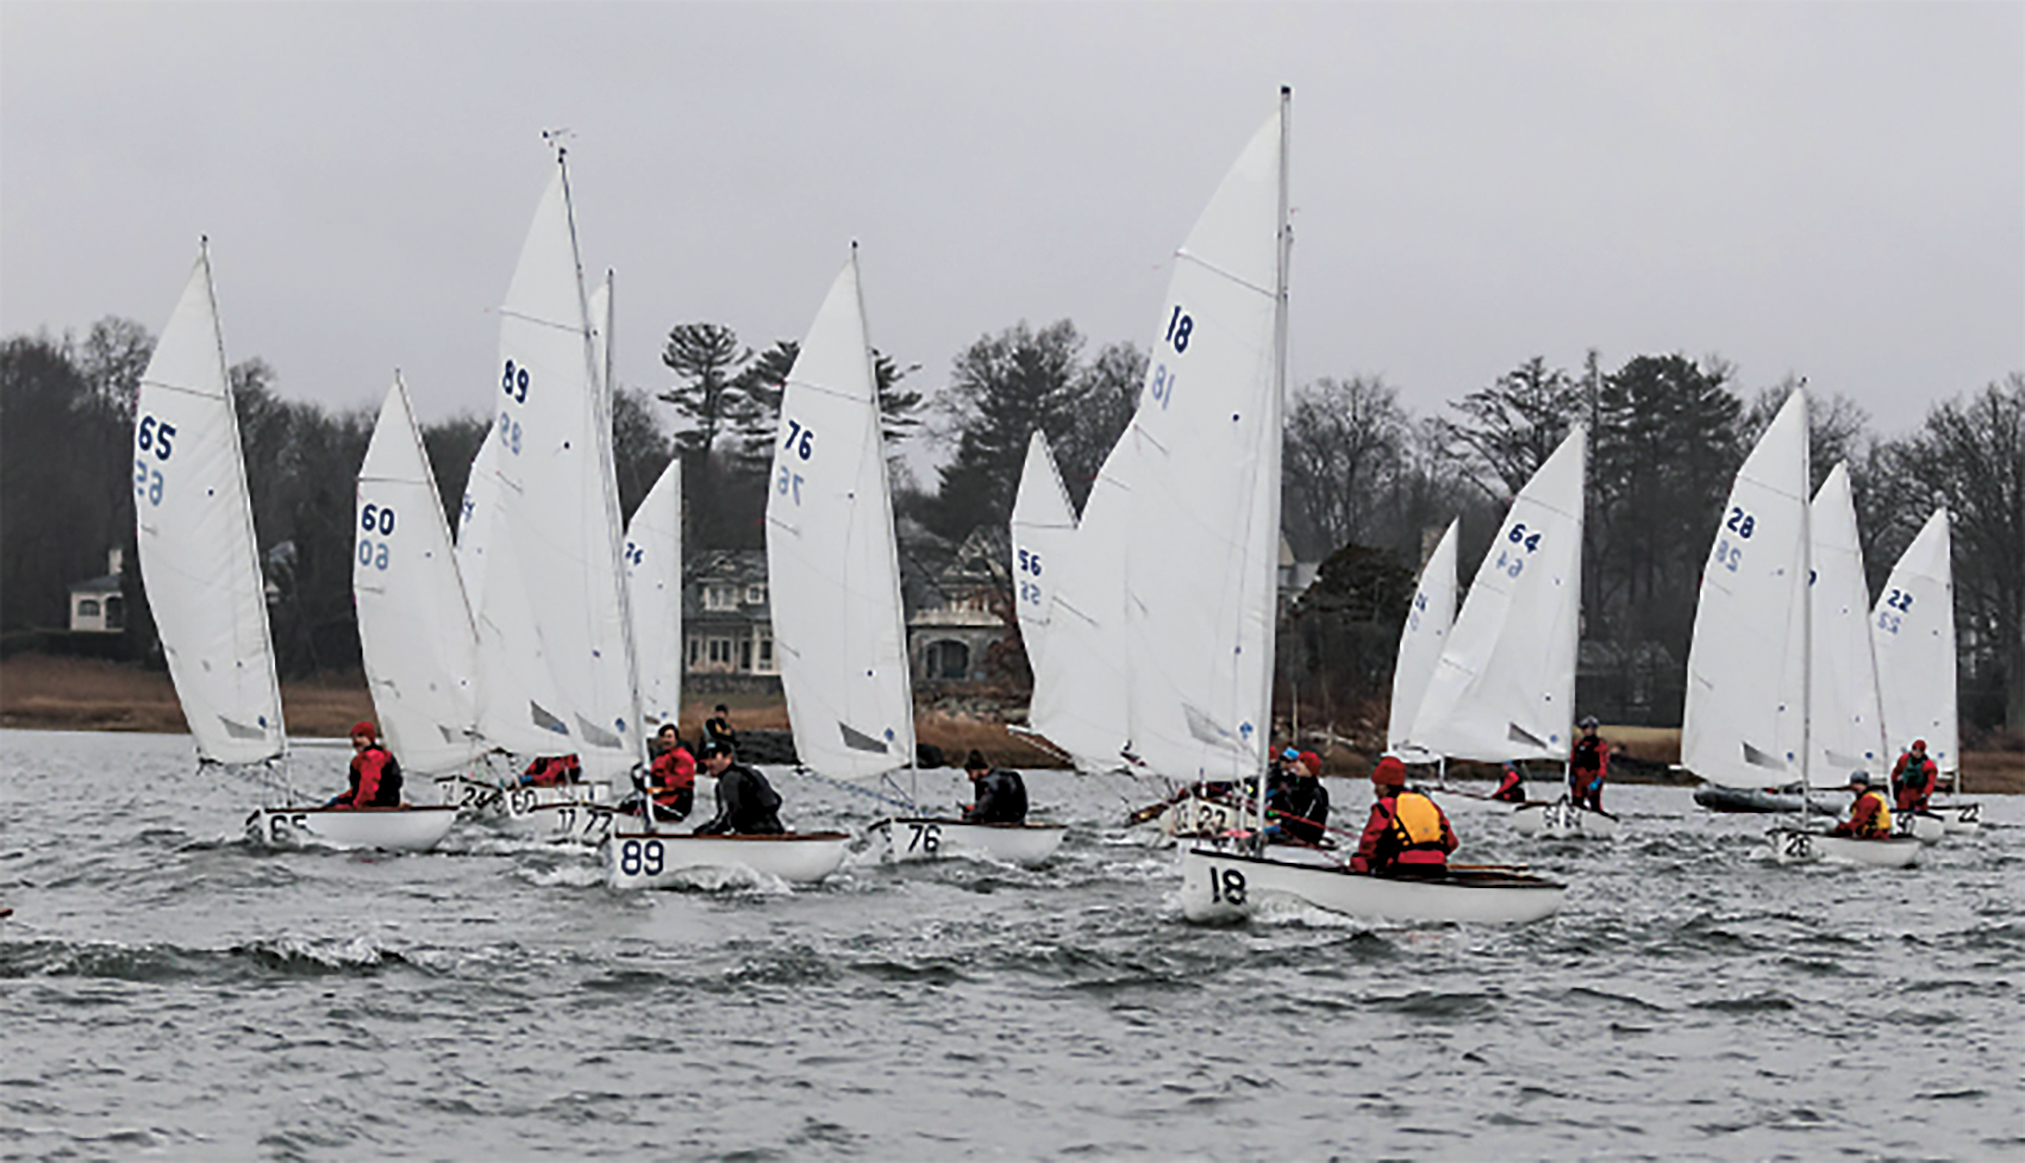 The frostbiting dingy (for winter sailing) shared by Beck Laverge '88 and Tom Rein '98 in Riverside, Conn.